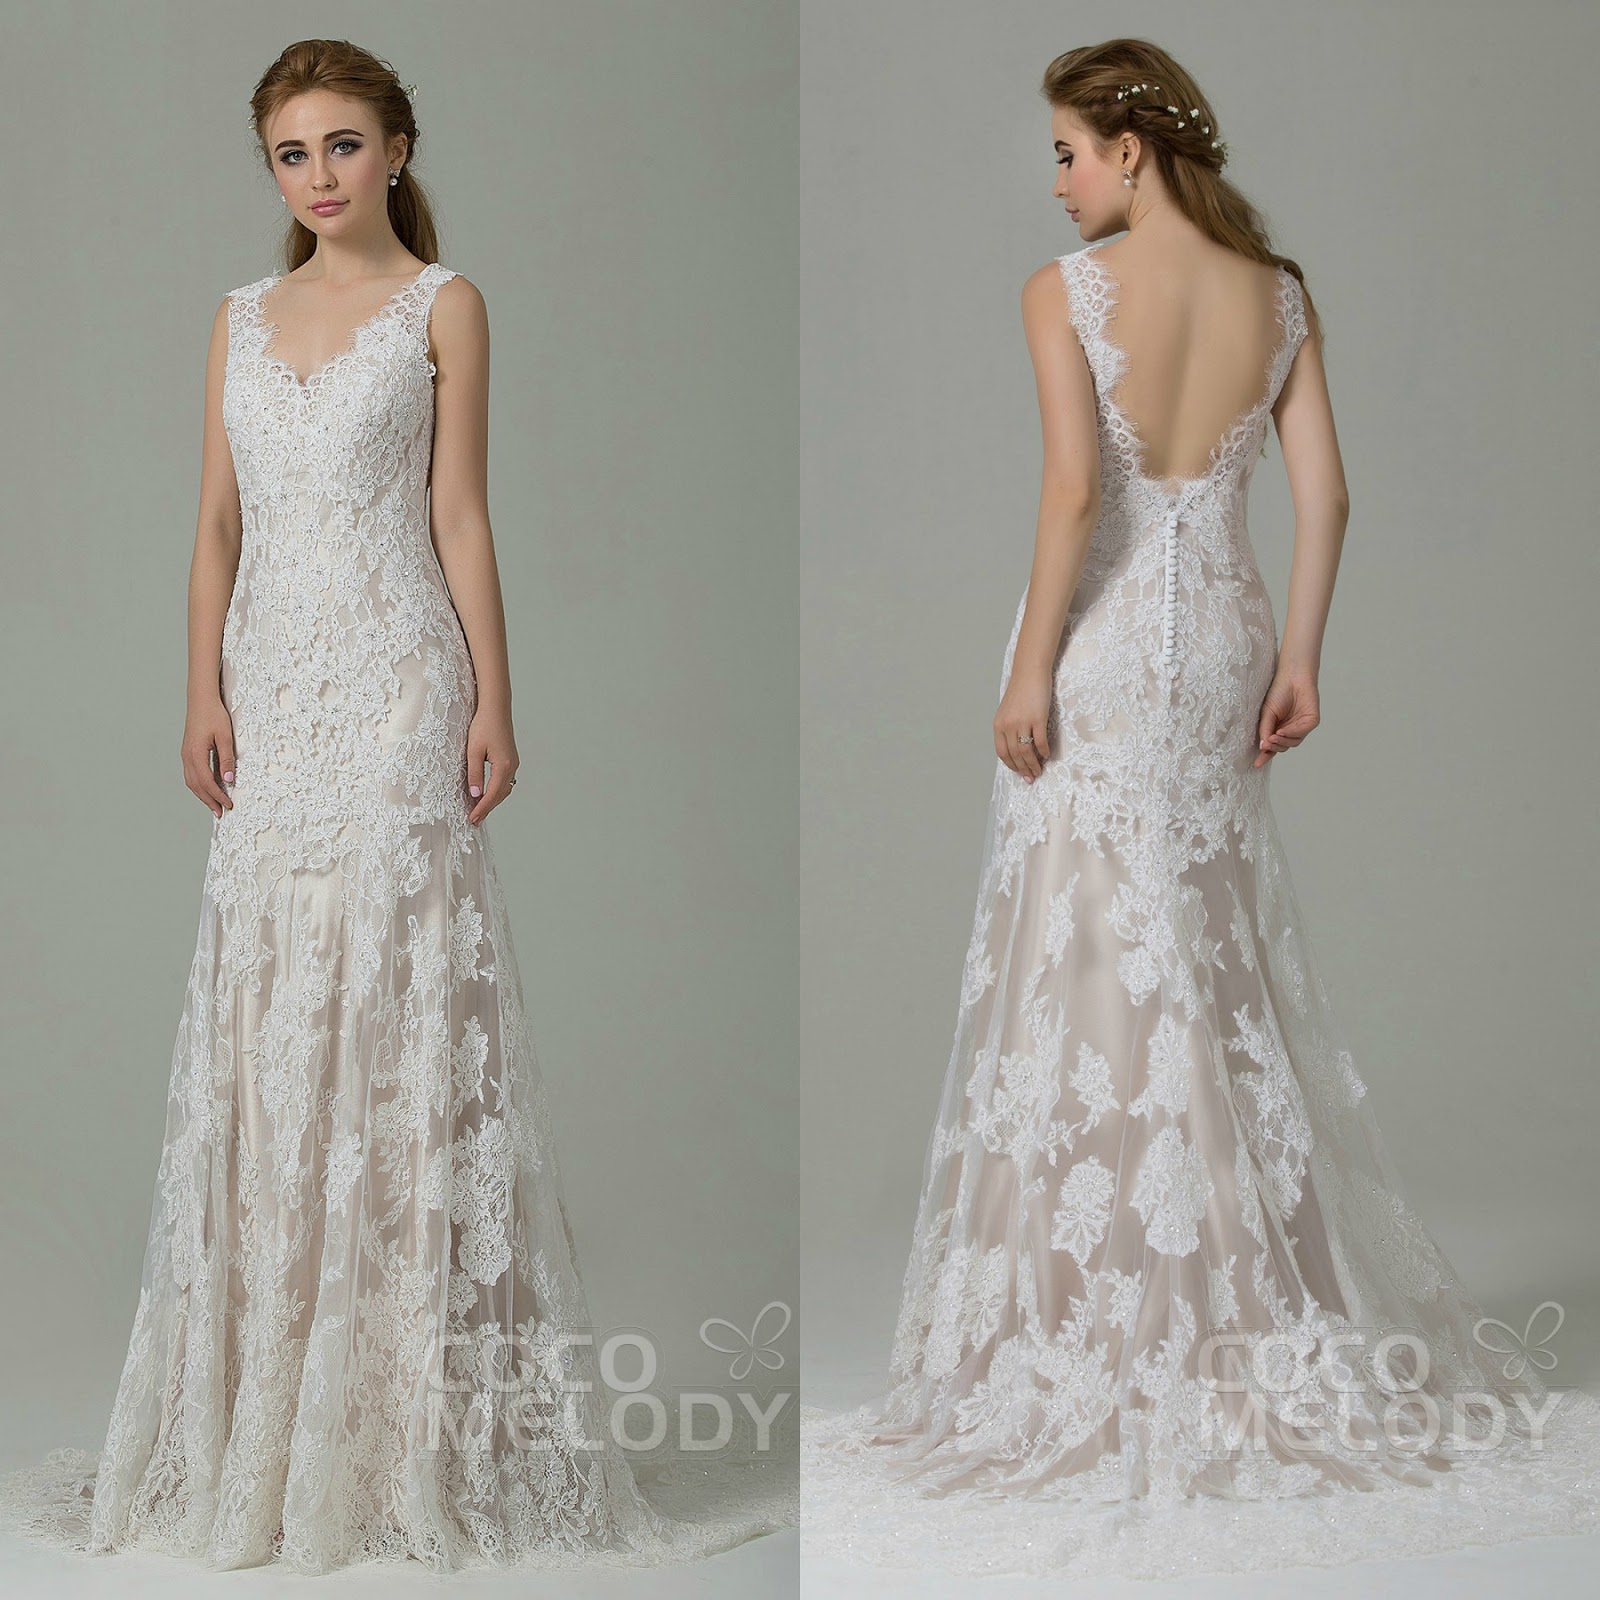 Wedding trends: backless wedding dresses from Cocomelody / LA BOHÈME